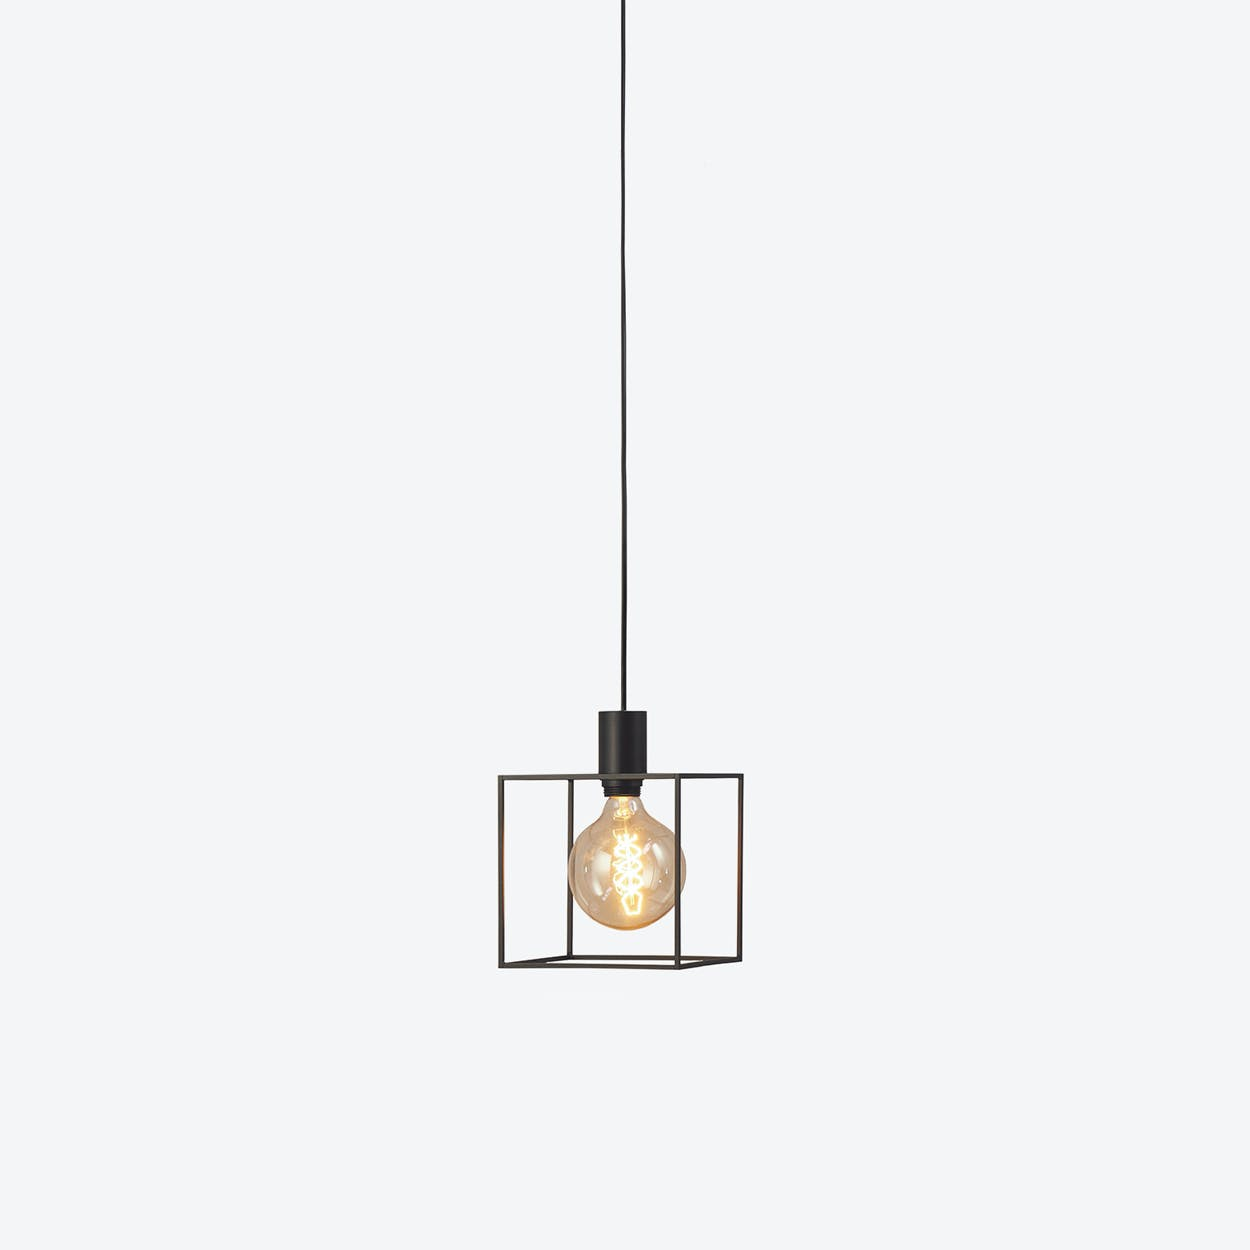 2in1 Paradice Naked Pendant and Table Lamp